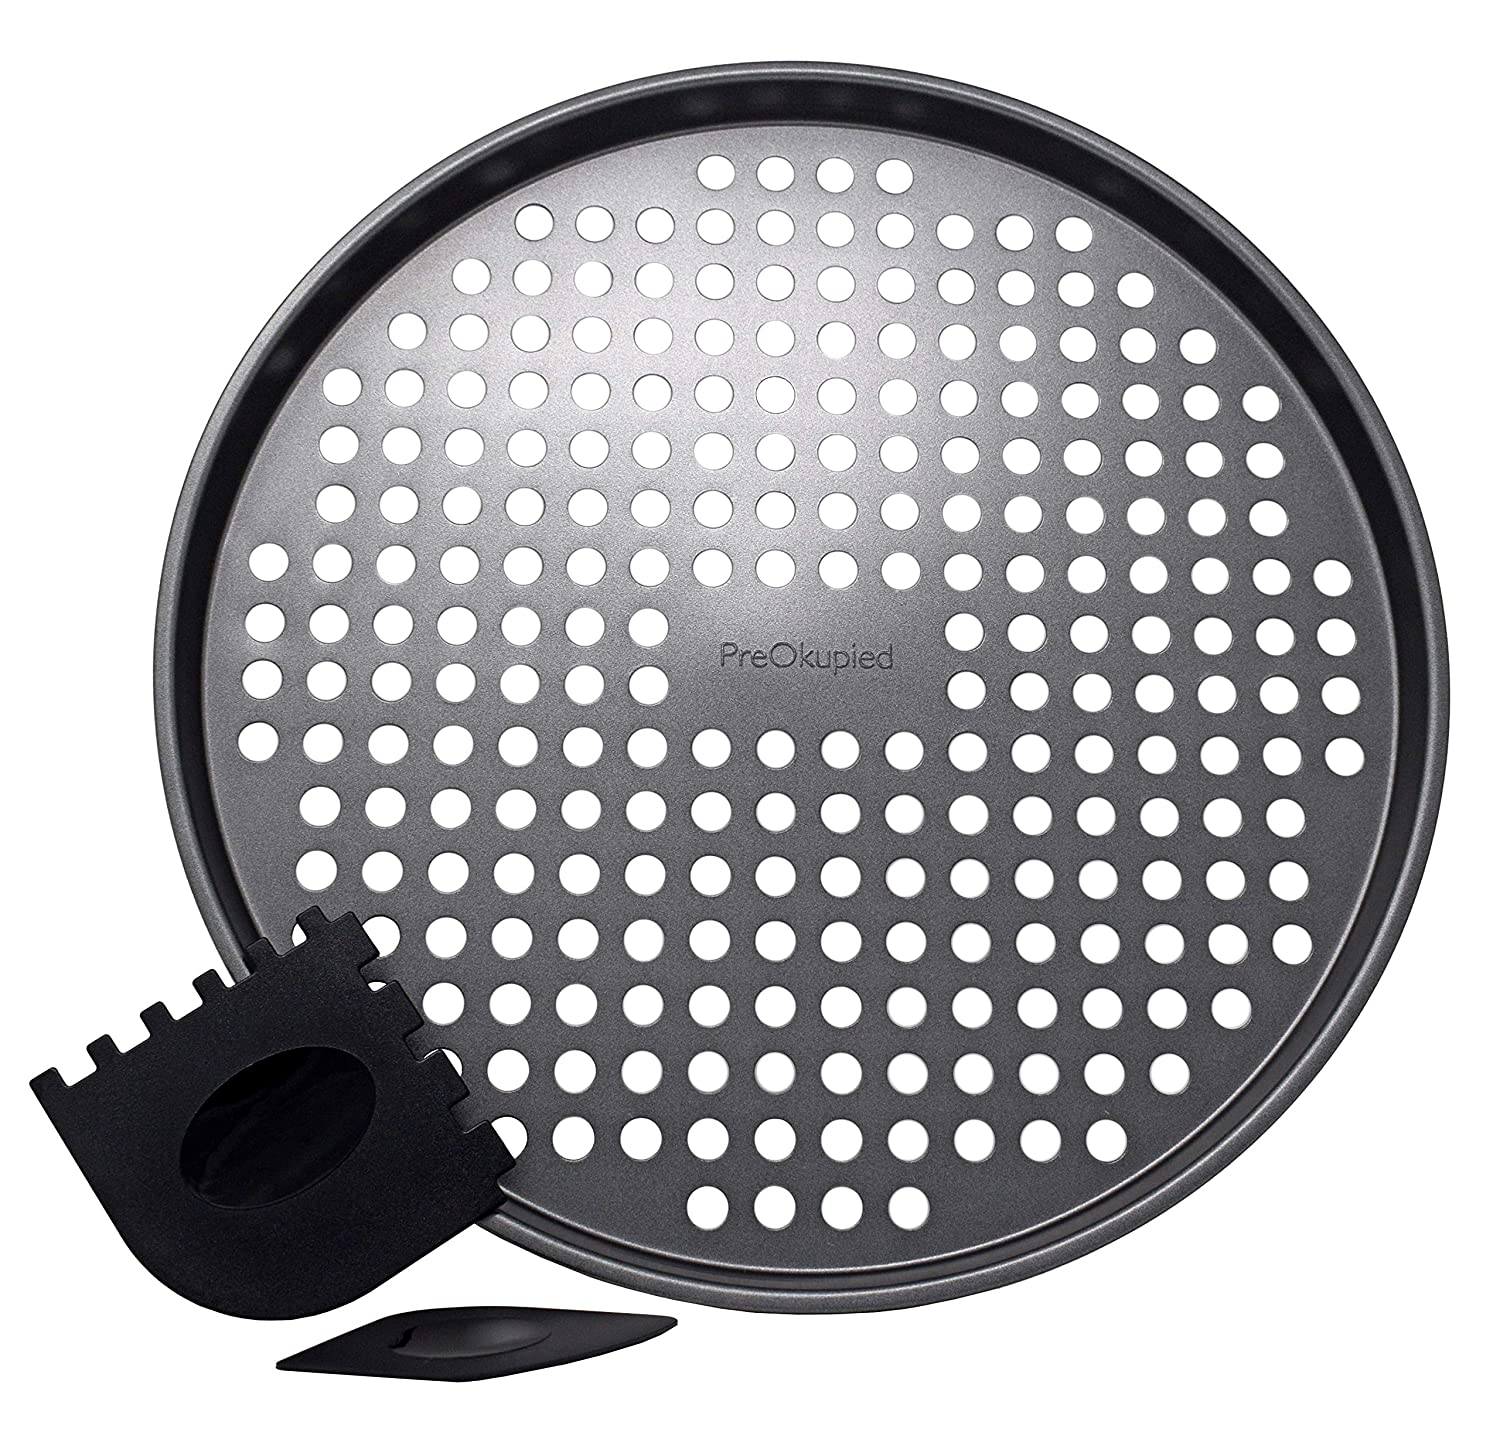 PreOkupied 12.2 Inch Perforated Pizza Pan, Dark Gray Carbon Steel with Nonstick Coating, Including 2 Black Pan Scrapers